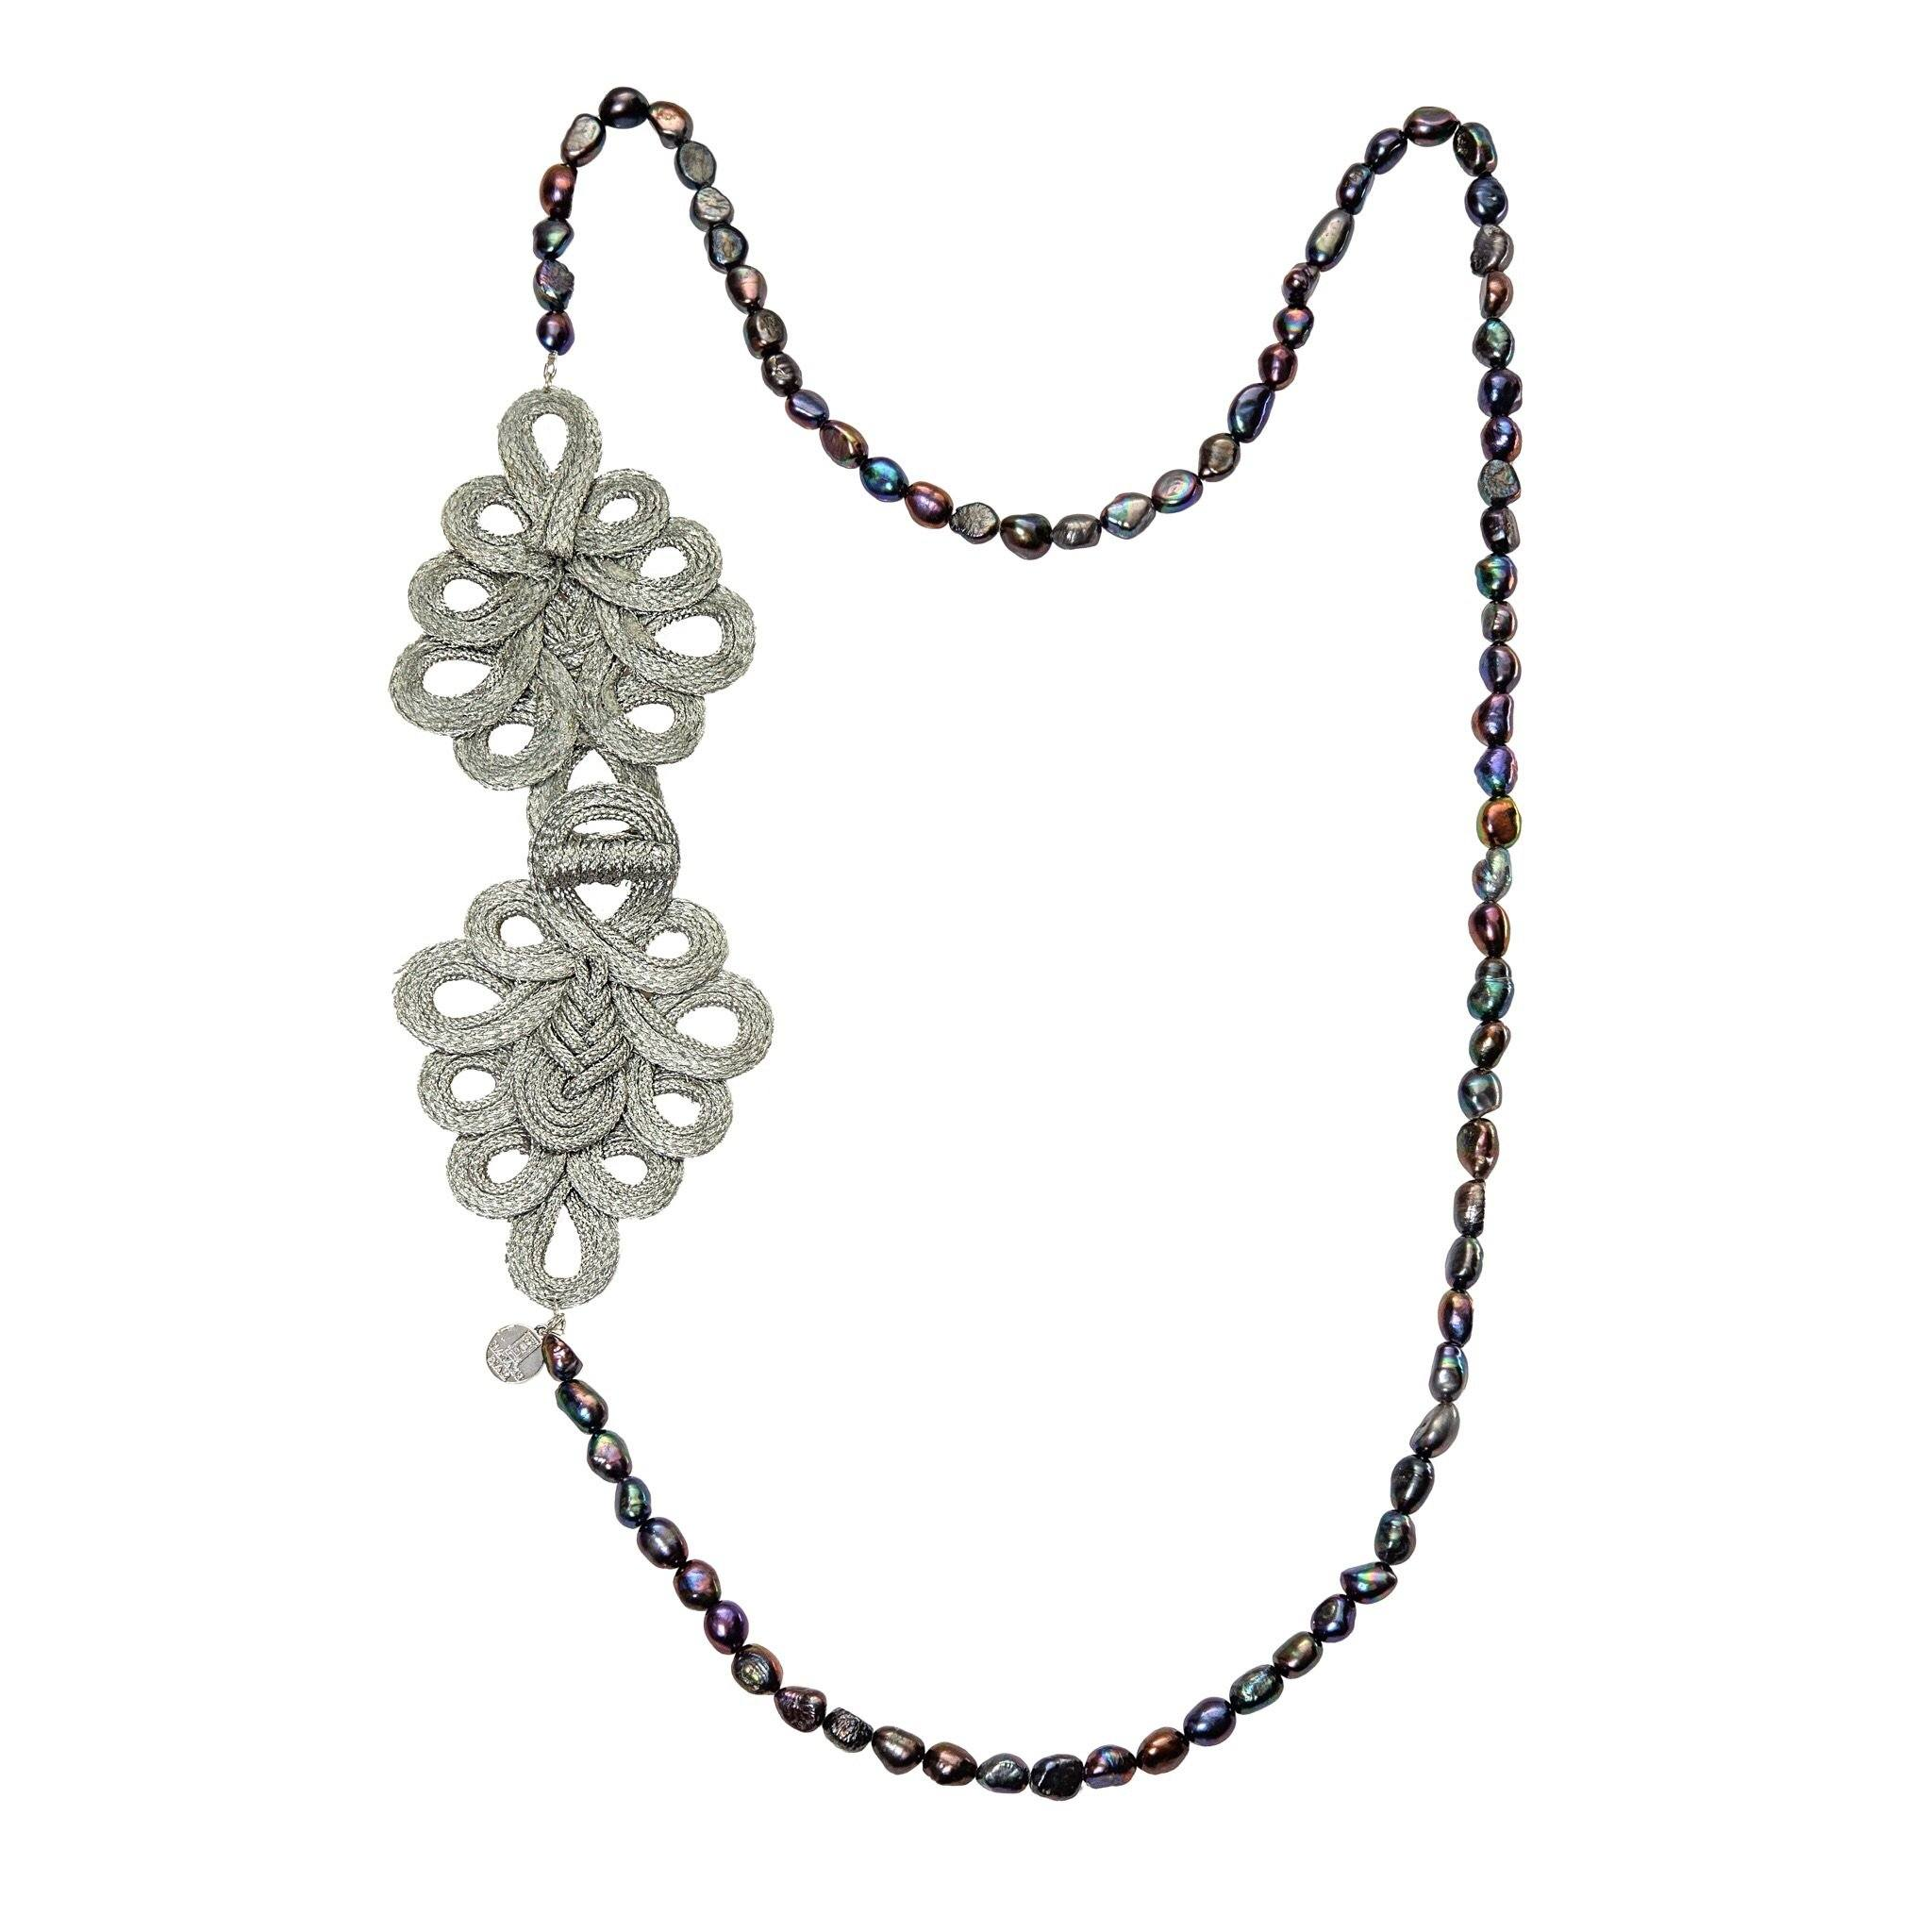 SAIGON grey freshwater pearls necklace - MadamSiam